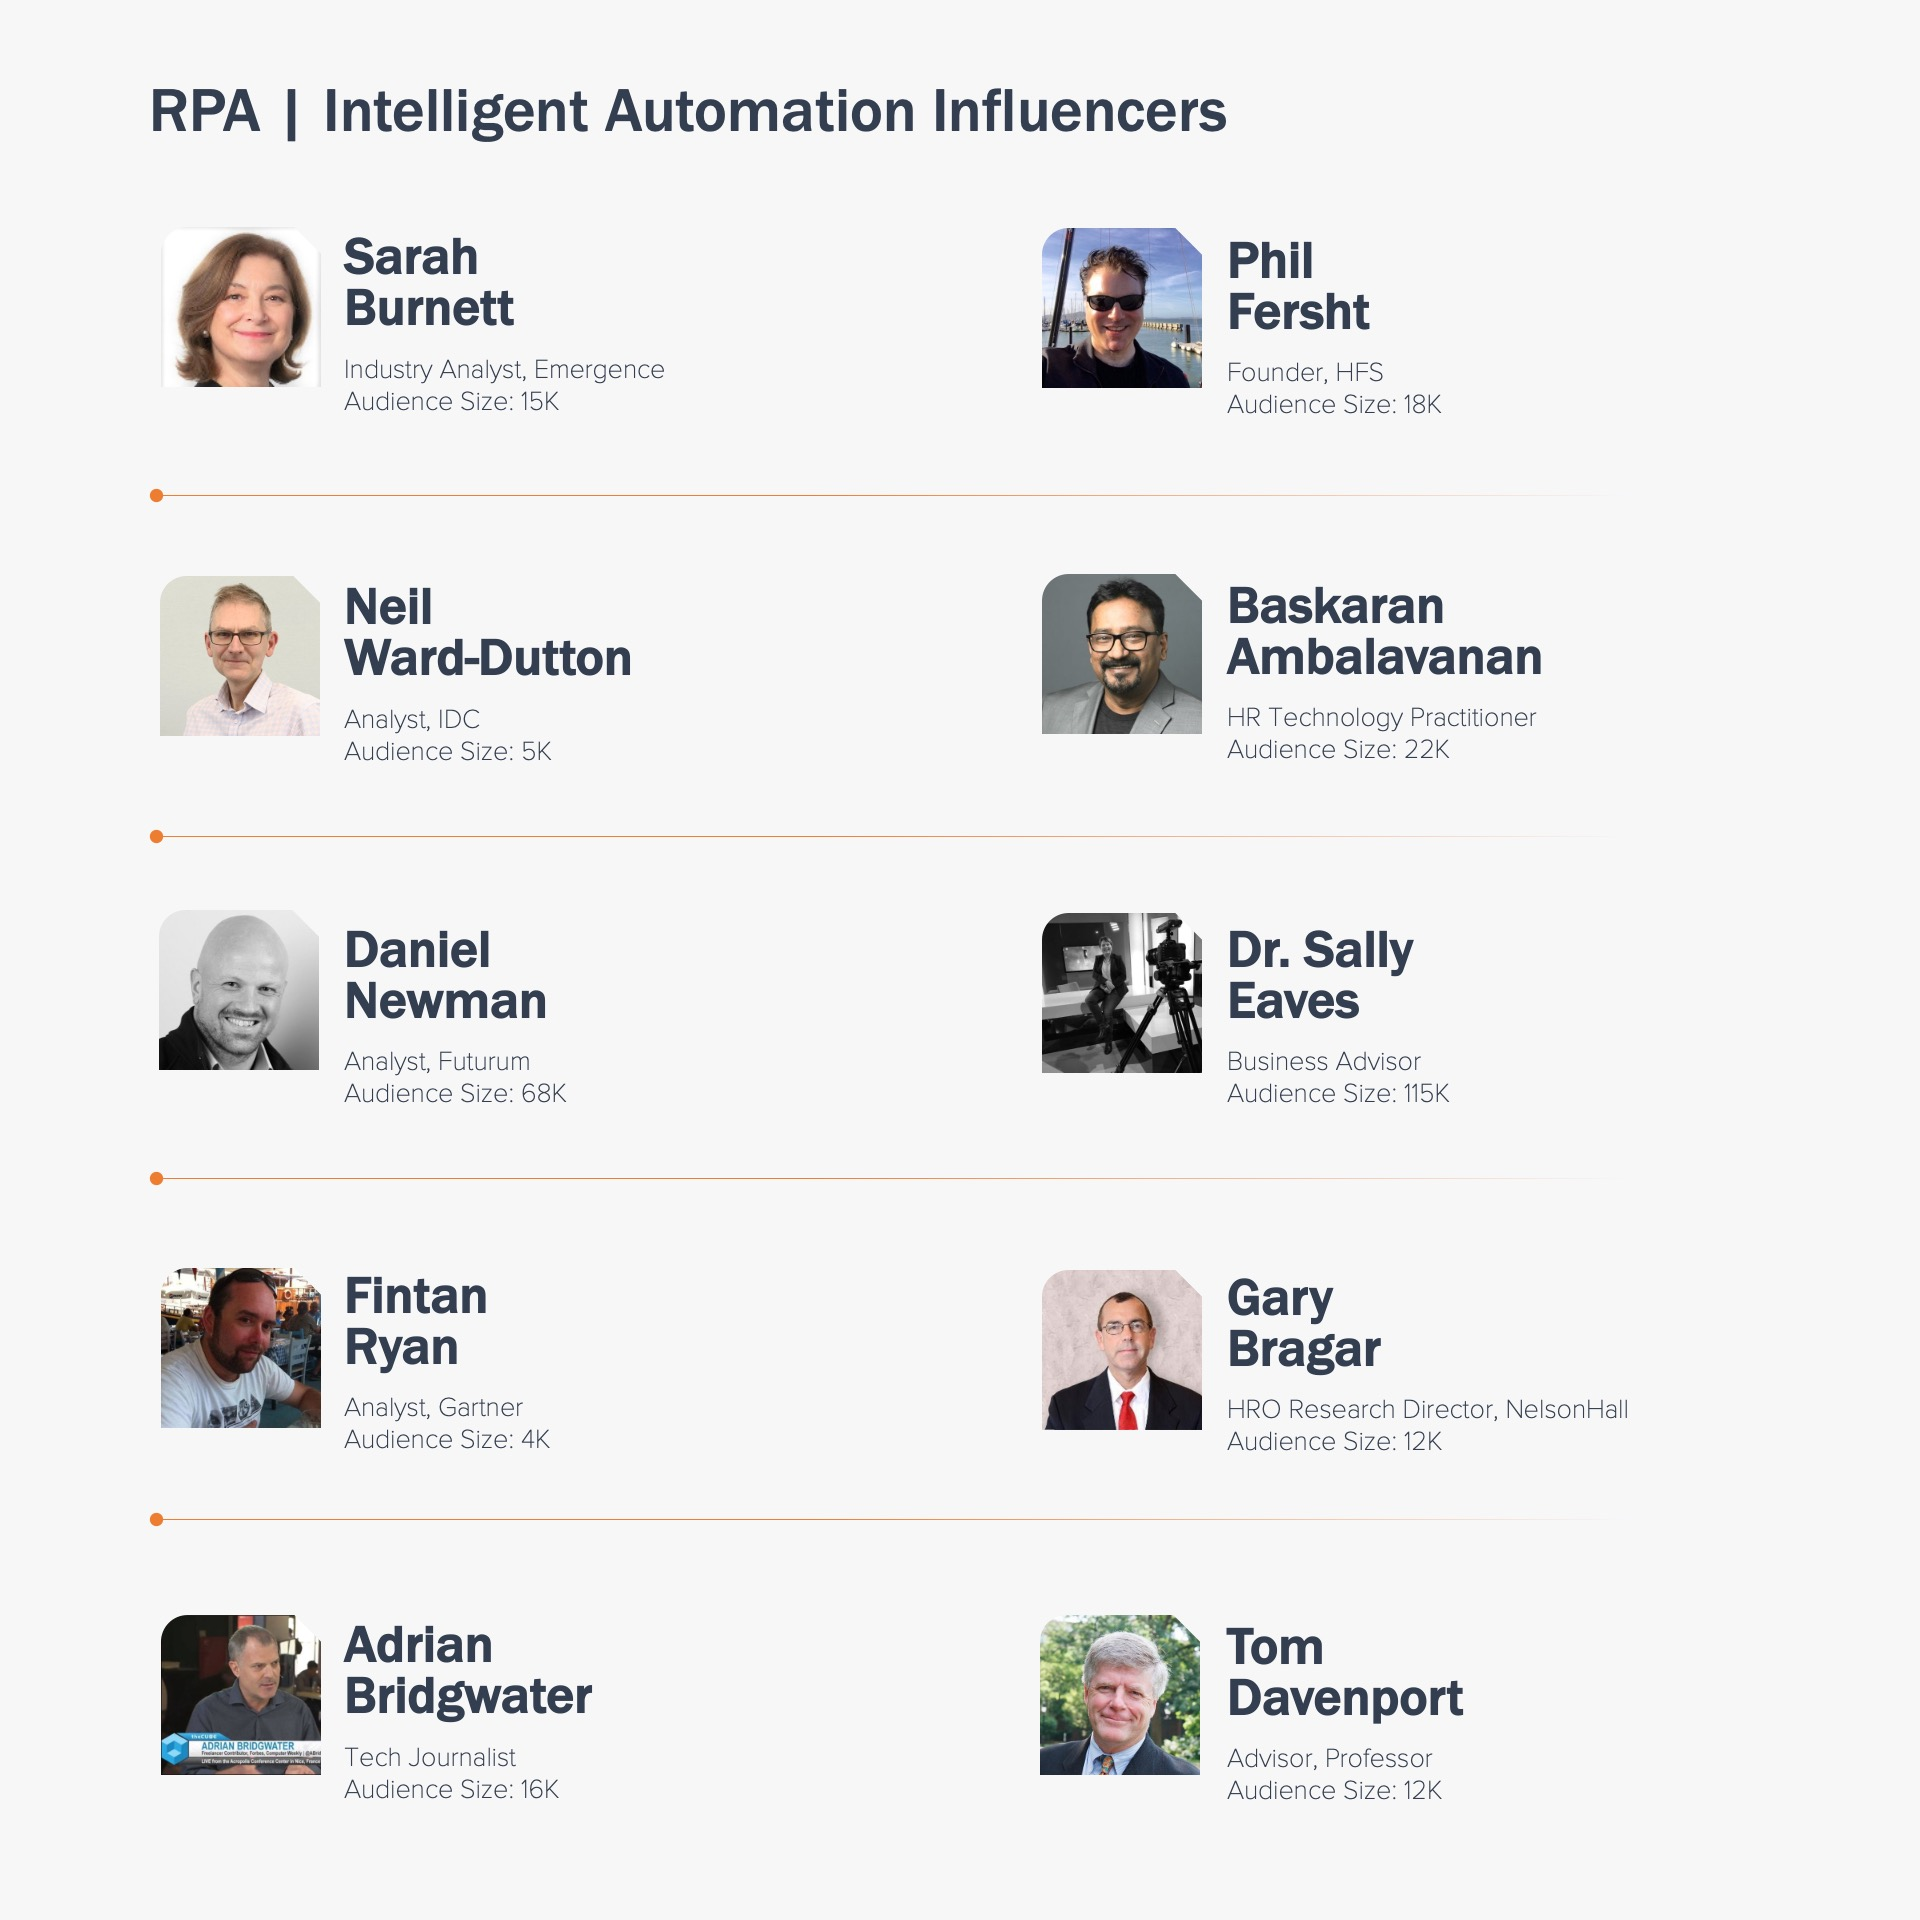 RPA Influencers